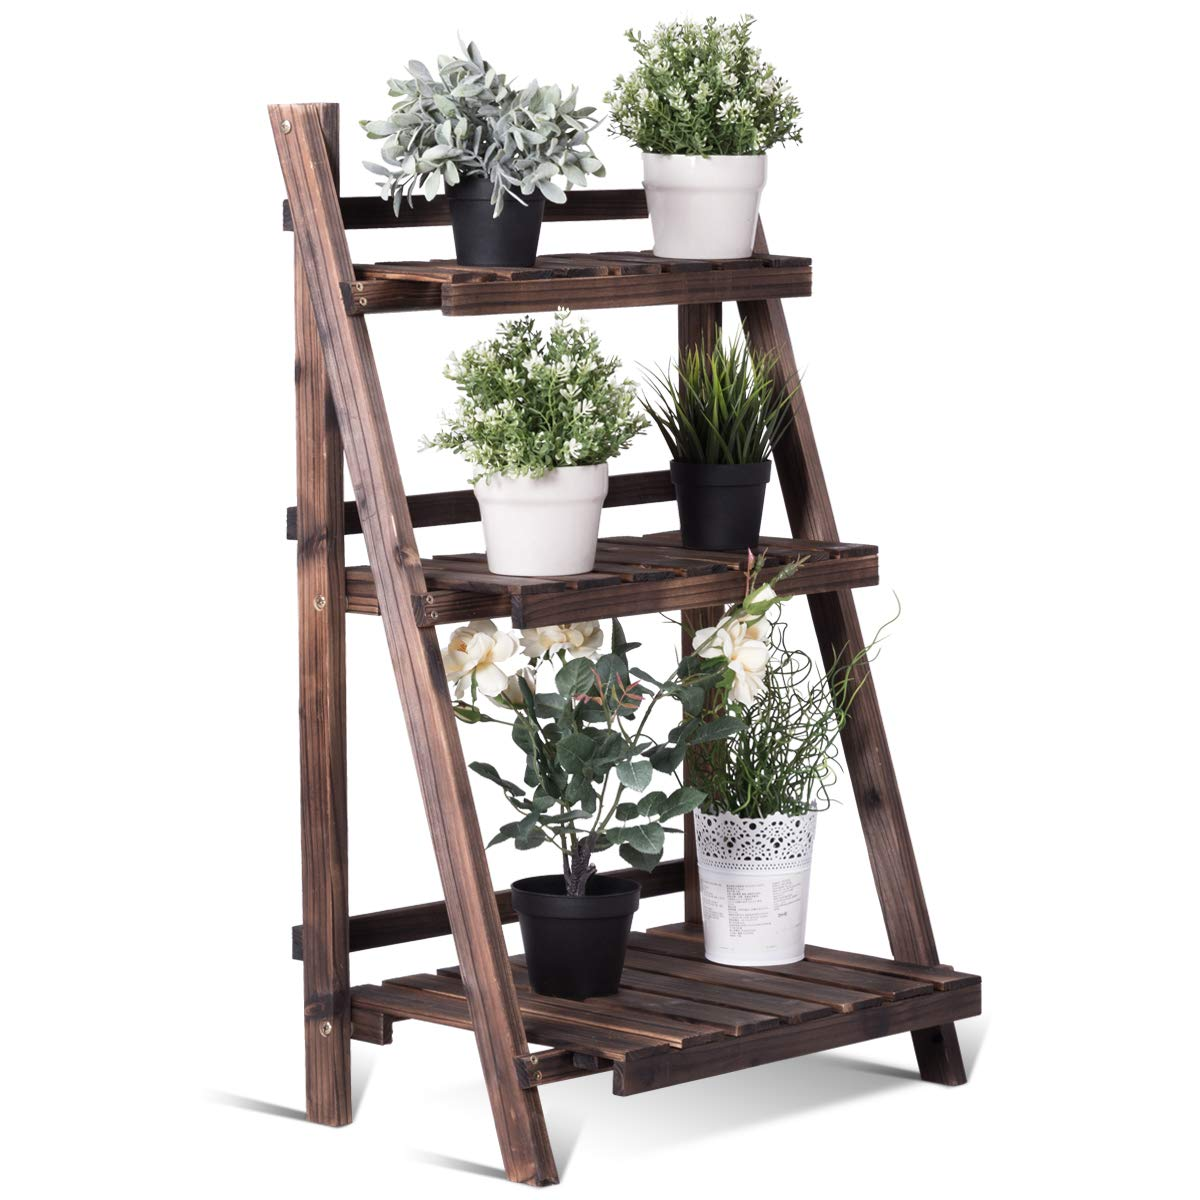 Wooden Plant Stand 3 Tier Garden Flower Pot Shelf Display Rack Outdoor Indoor